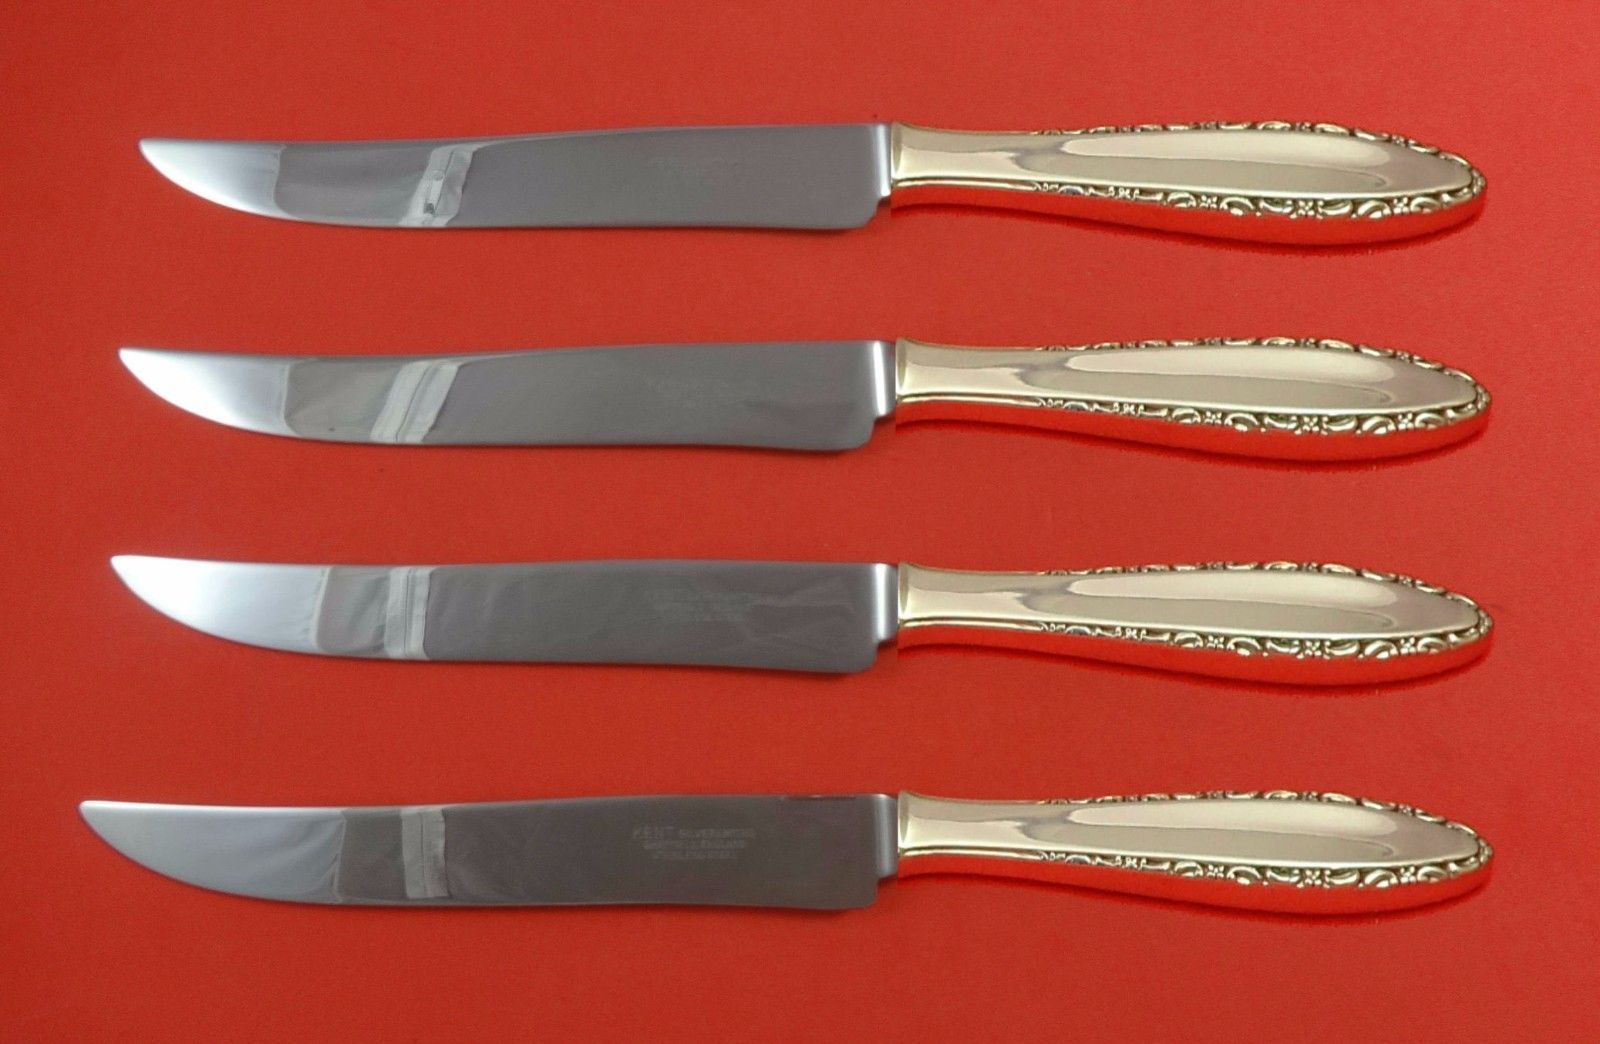 Lace Point by Lunt Sterling Silver Steak Knife Set 4pc Large Texas Sized Custom - $247.10